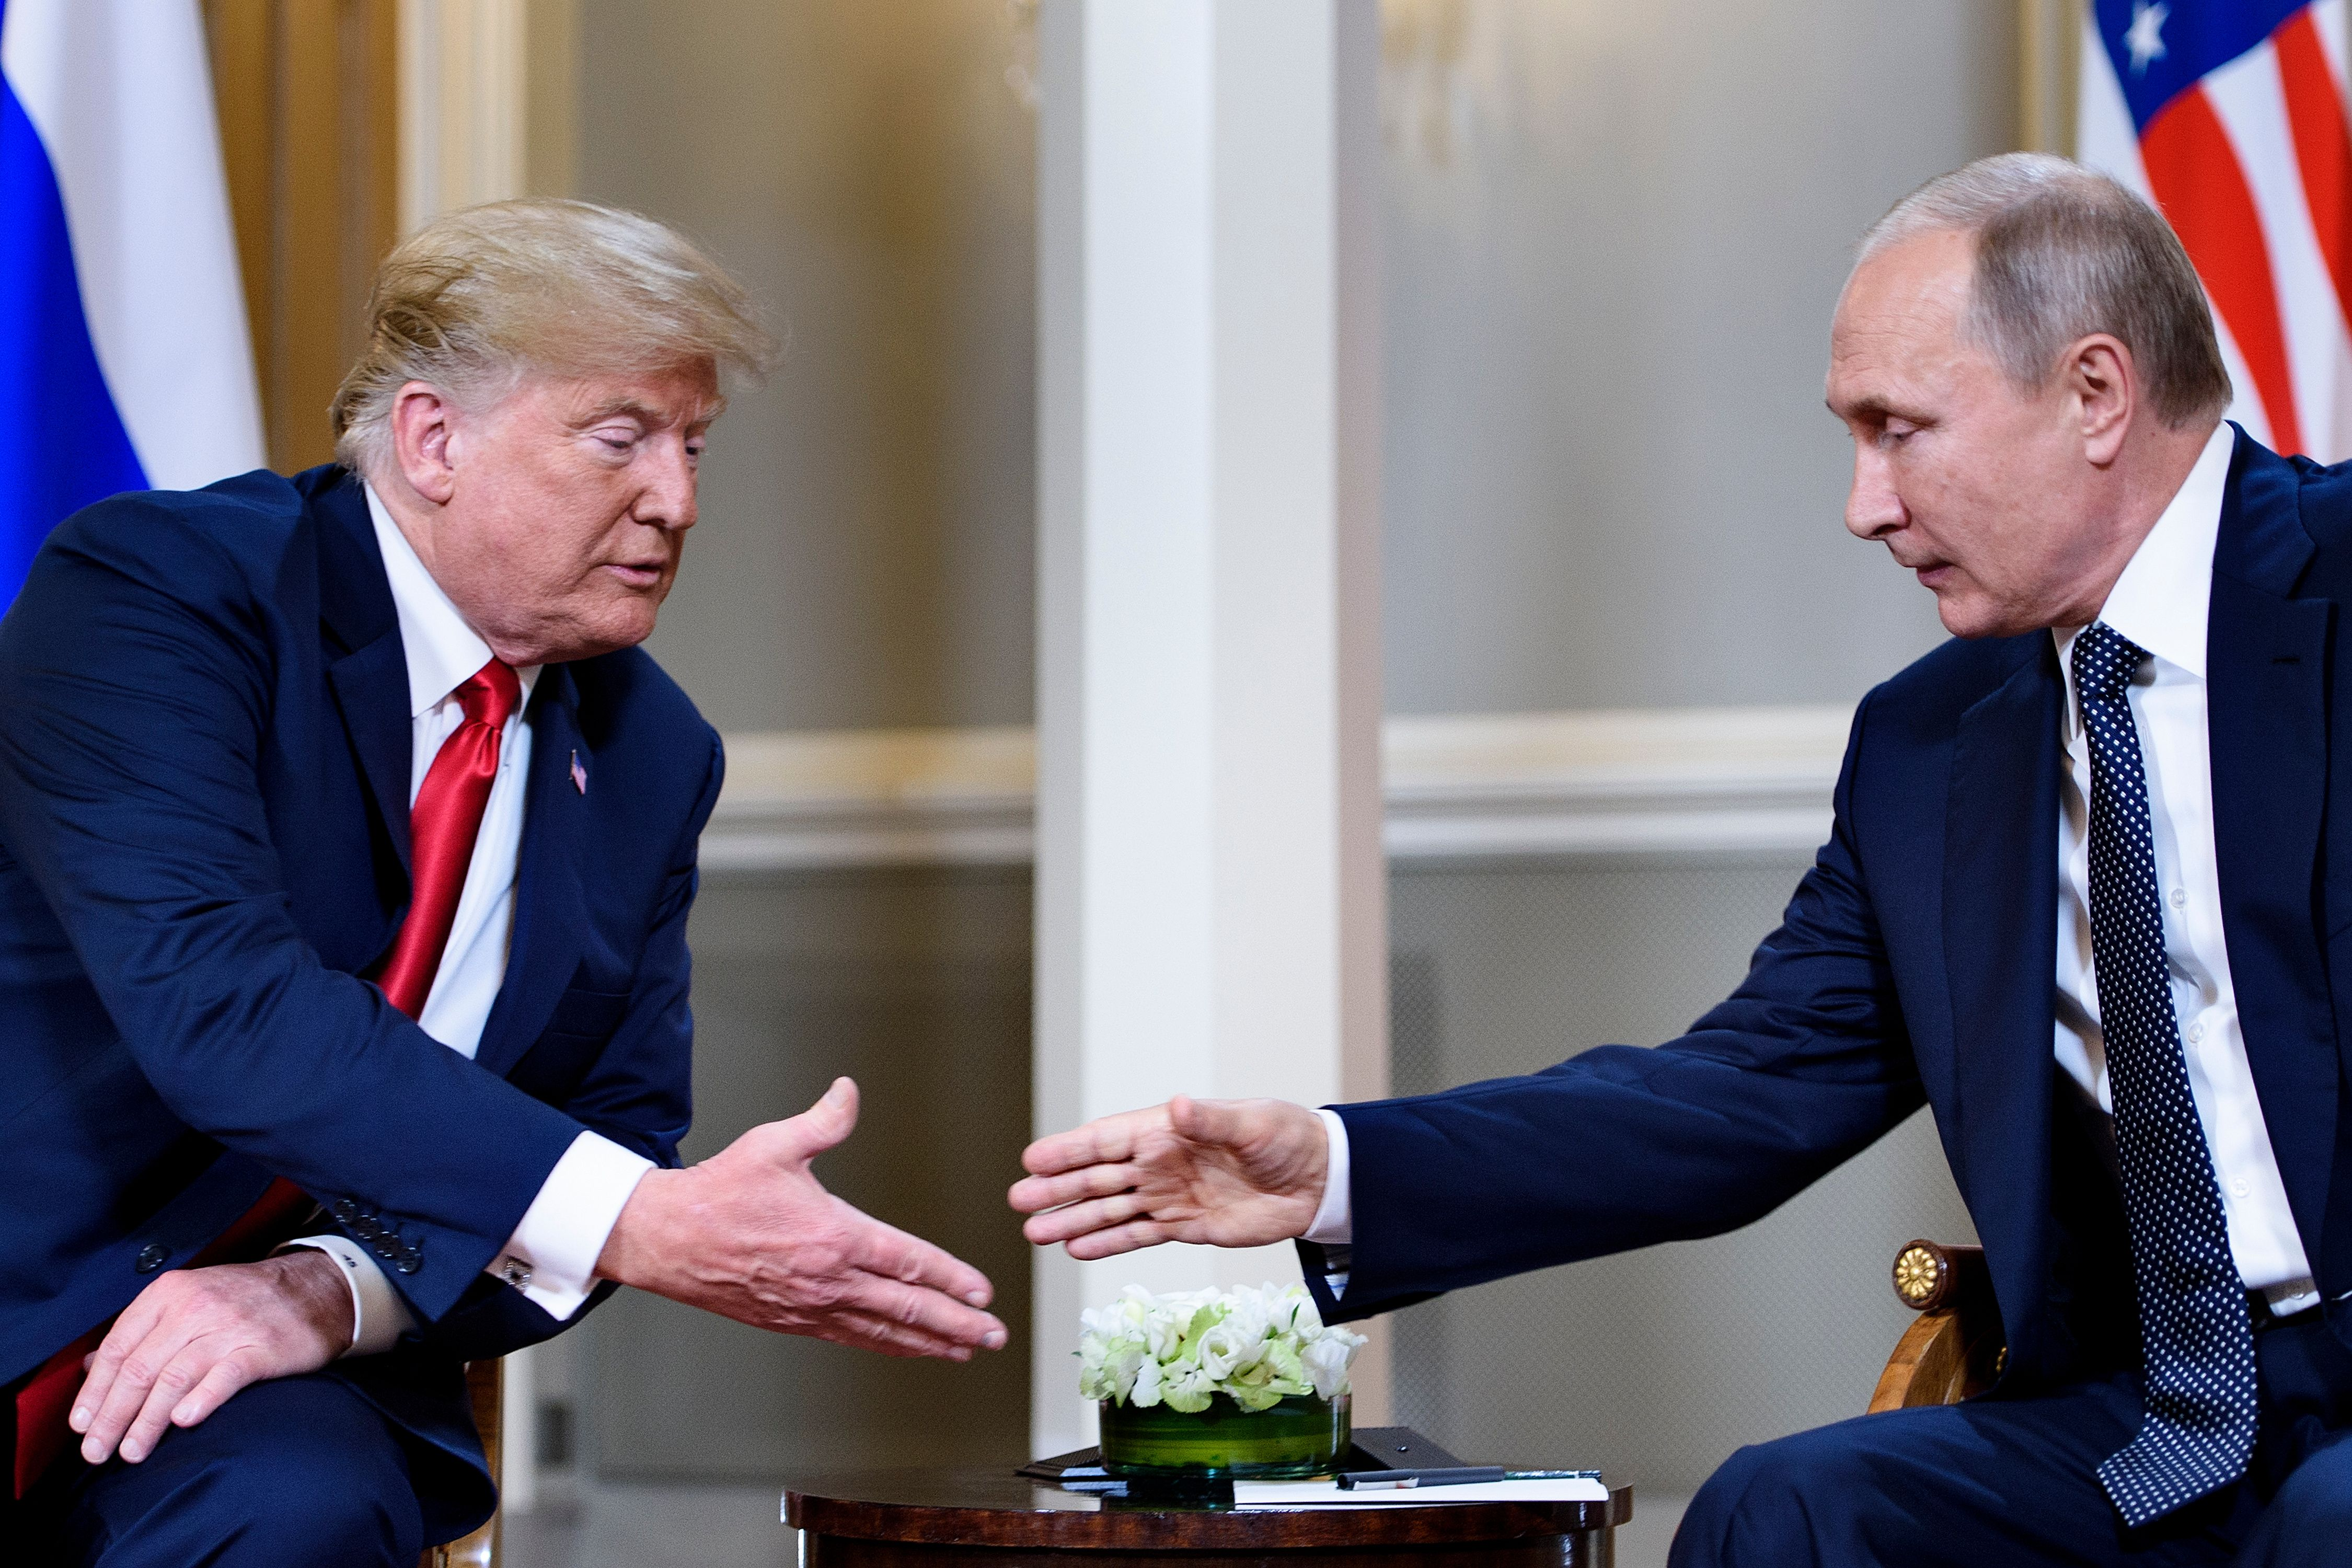 rollingstone.com - Ryan Bort - All the Ways Trump Is Trying to Let Russia Off the Hook